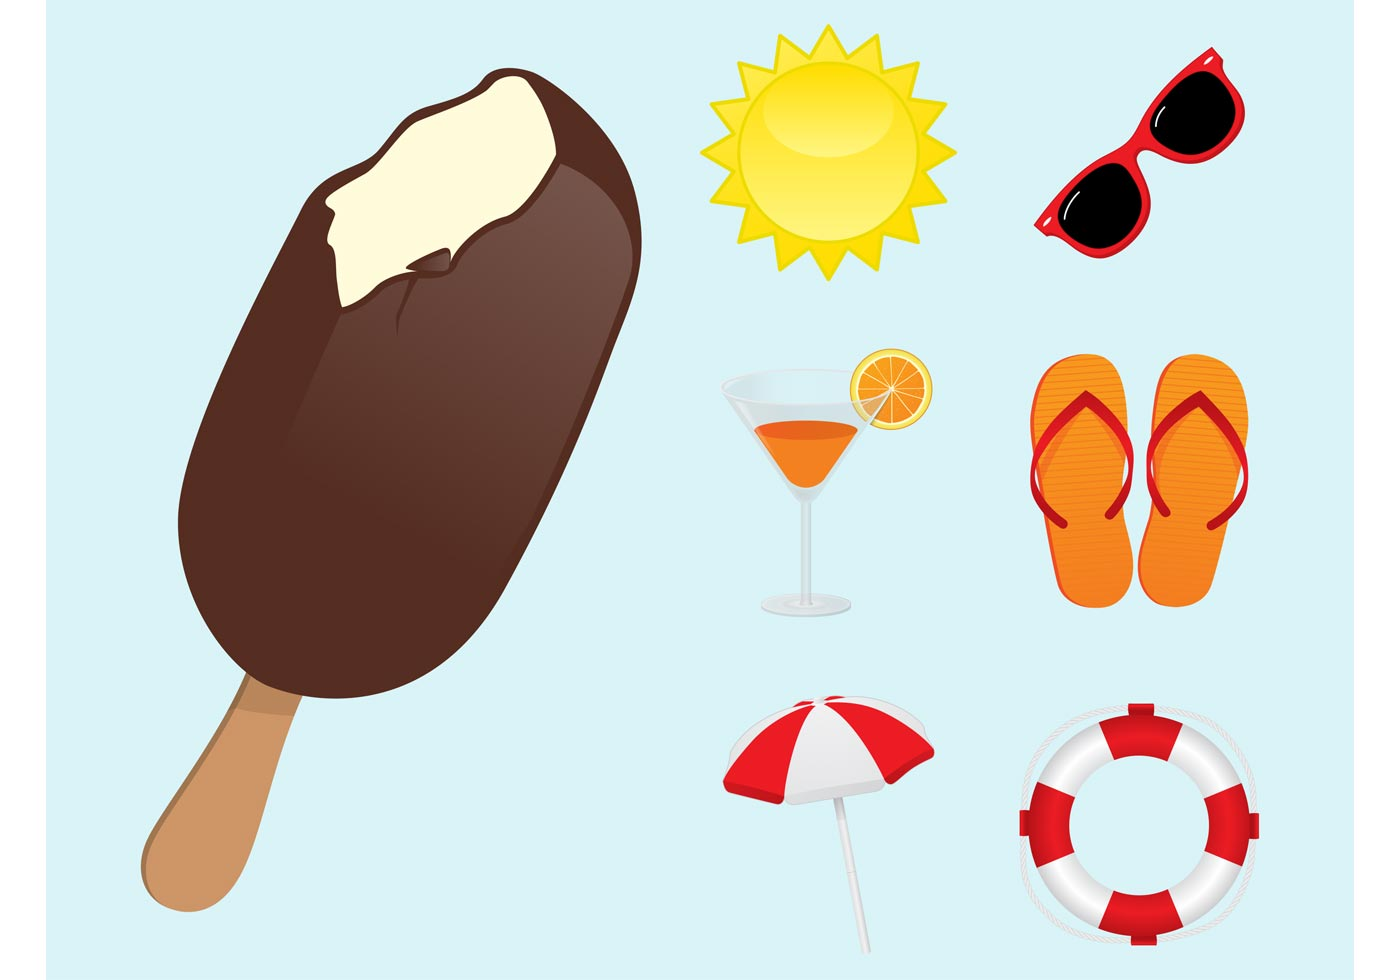 Sun Shining Pack Umbrella >> Summertime Icons - Download Free Vector Art, Stock Graphics & Images